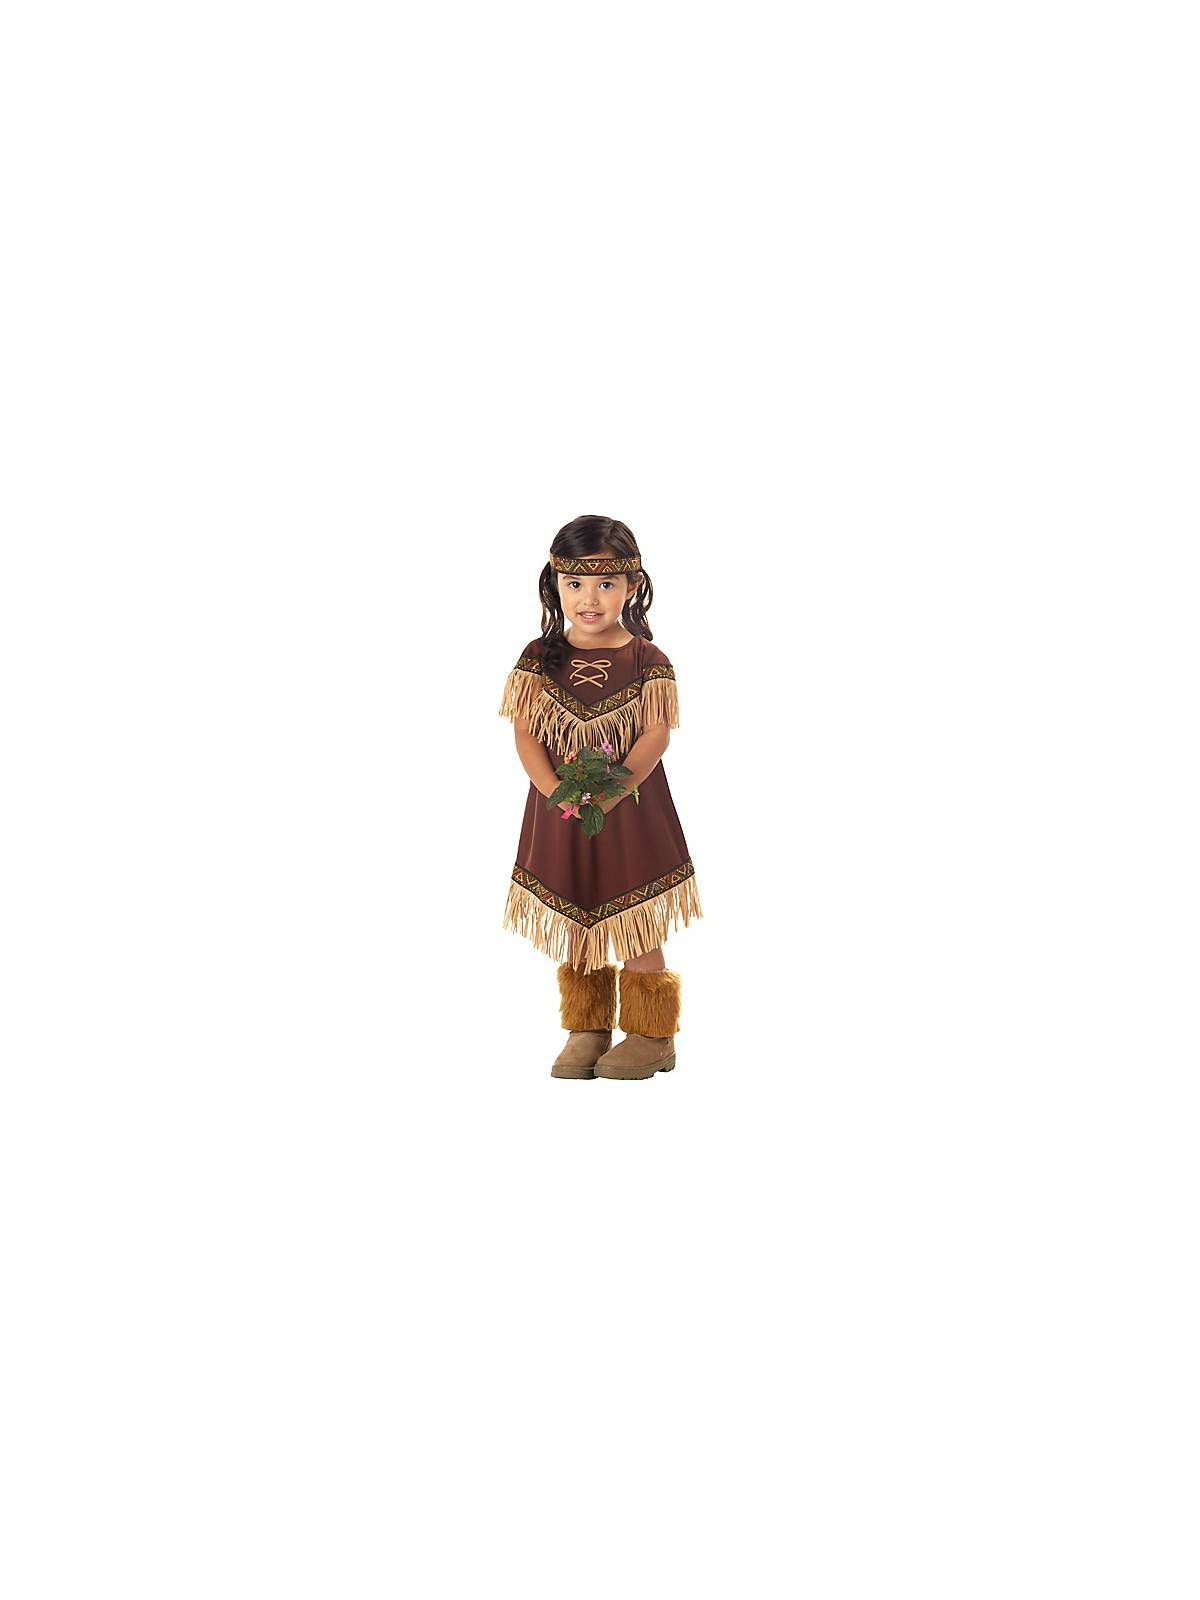 08388538415b6 Toddler Lil Indian Princess Costume! See more #costume ideas for Halloween  and more at CostumeSuperCenter.com